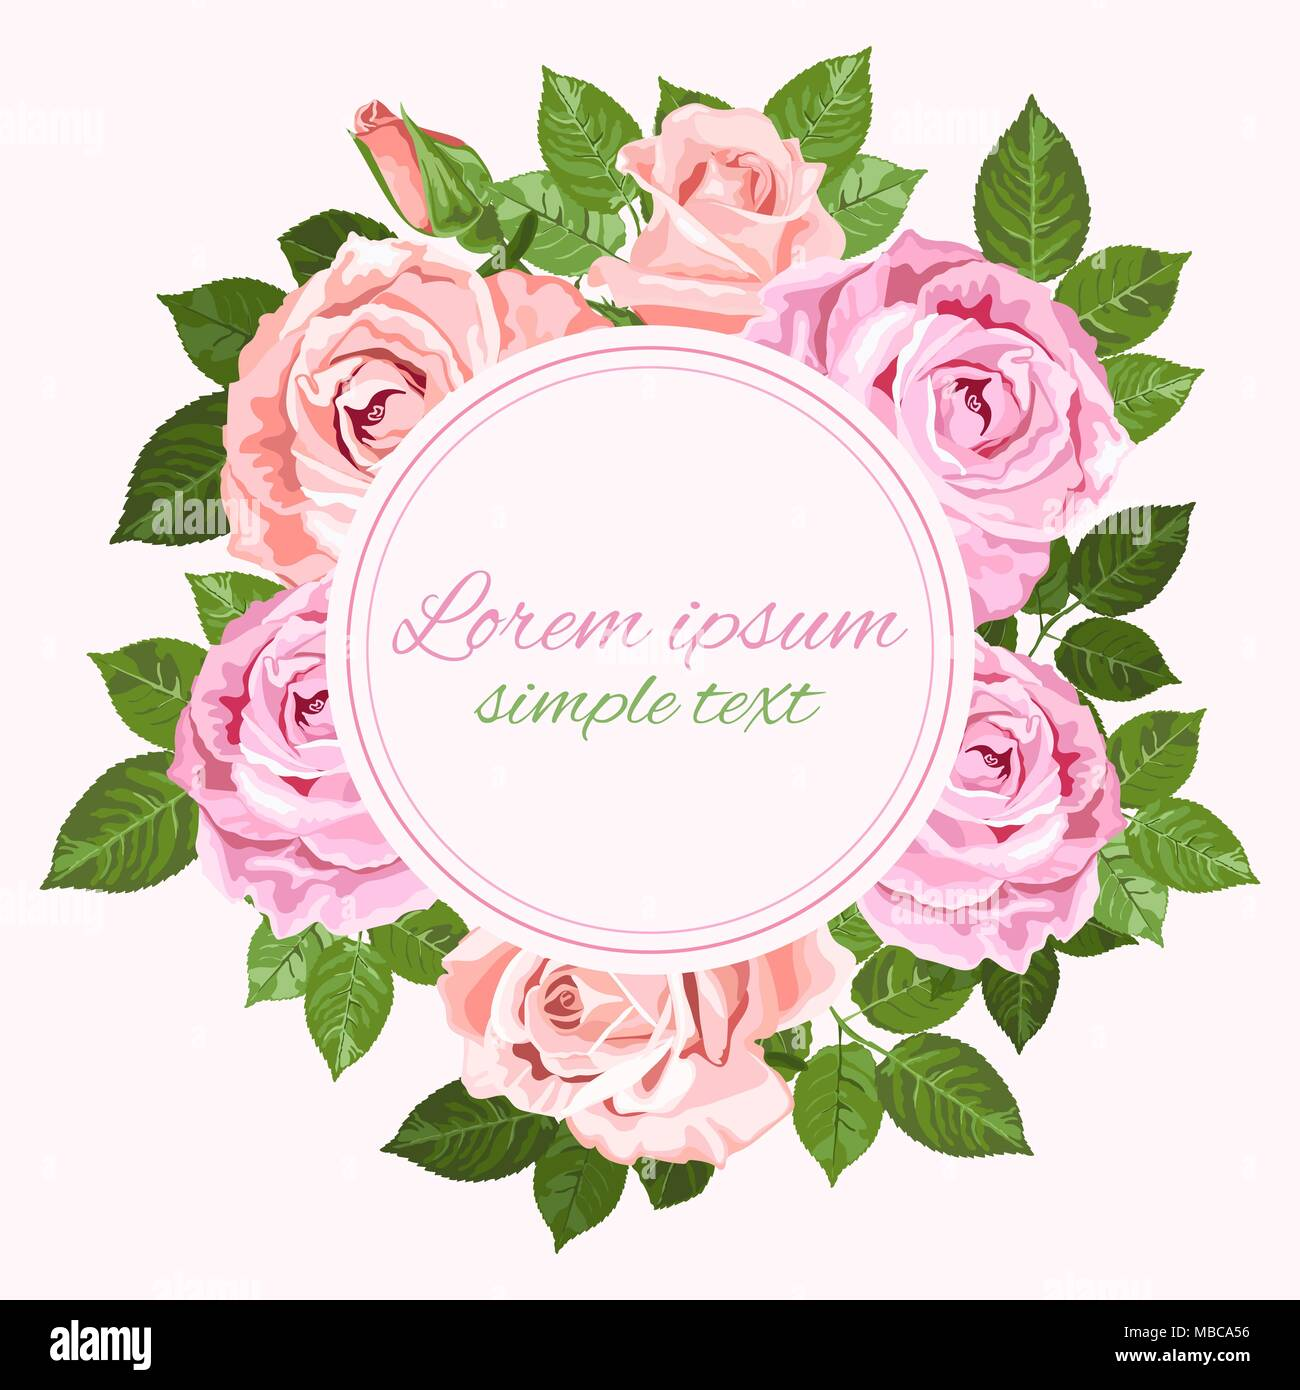 4cc6a9d9829 Vector Save the date wedding invitations with pink and beige roses wreath  and place for text on the white background. Floral design for greeting card